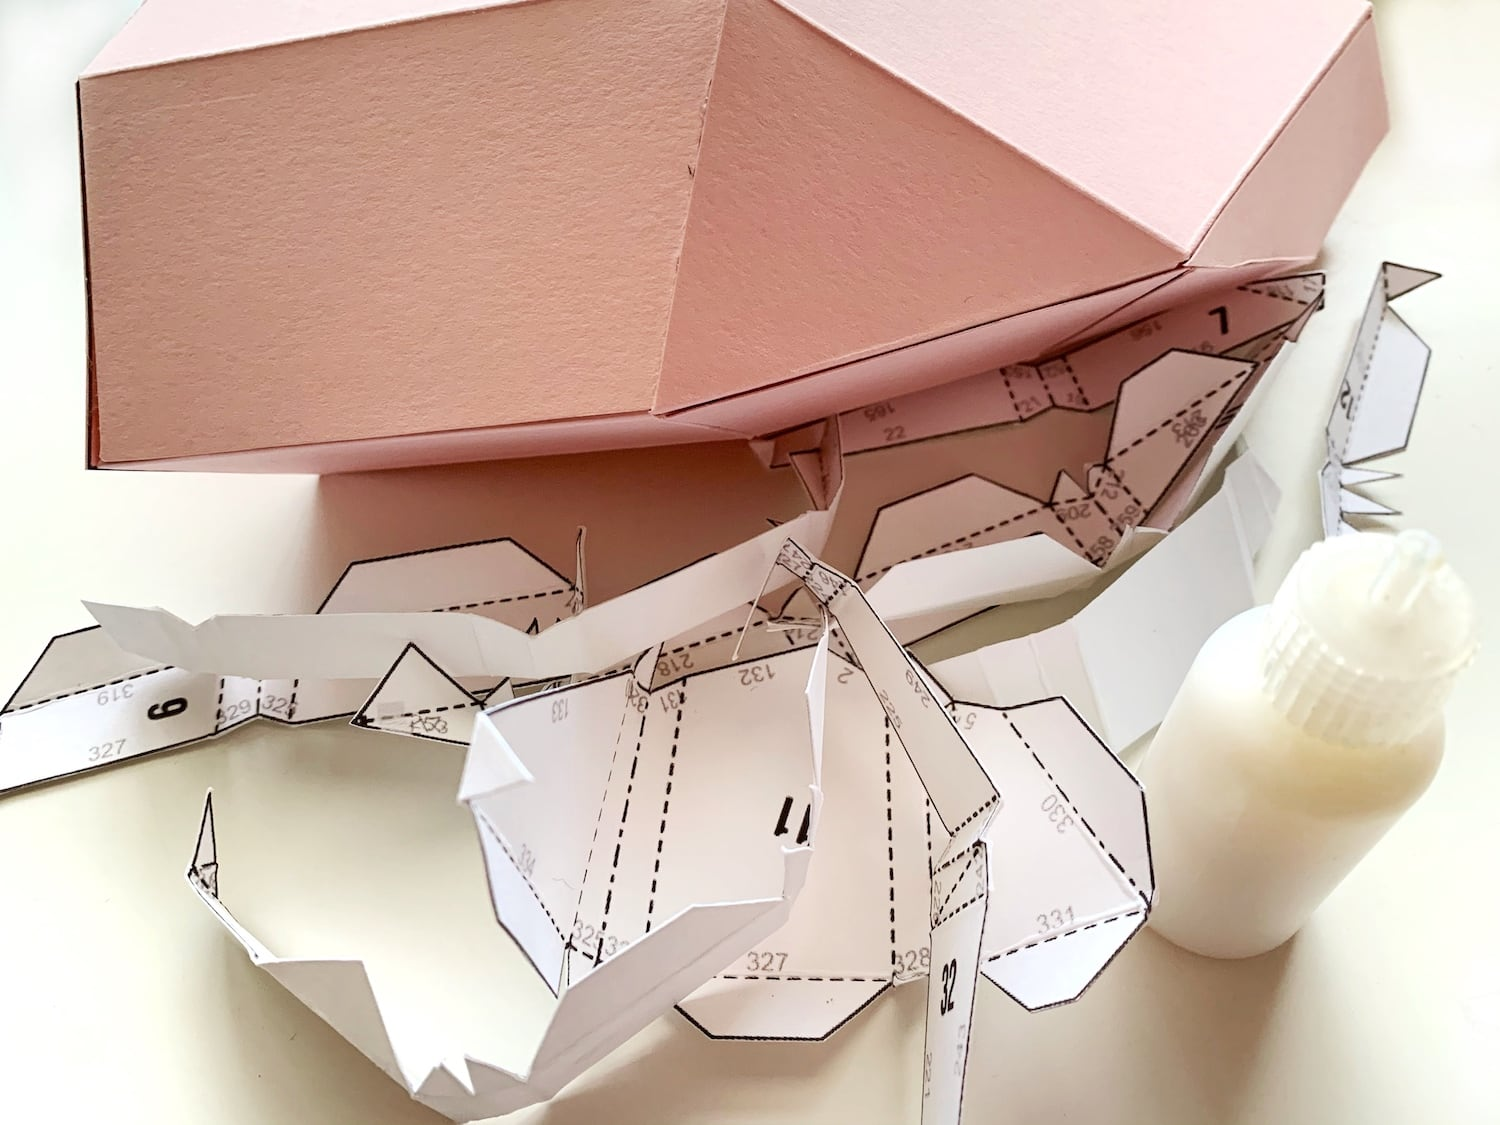 gluing pieces for paper sculpture